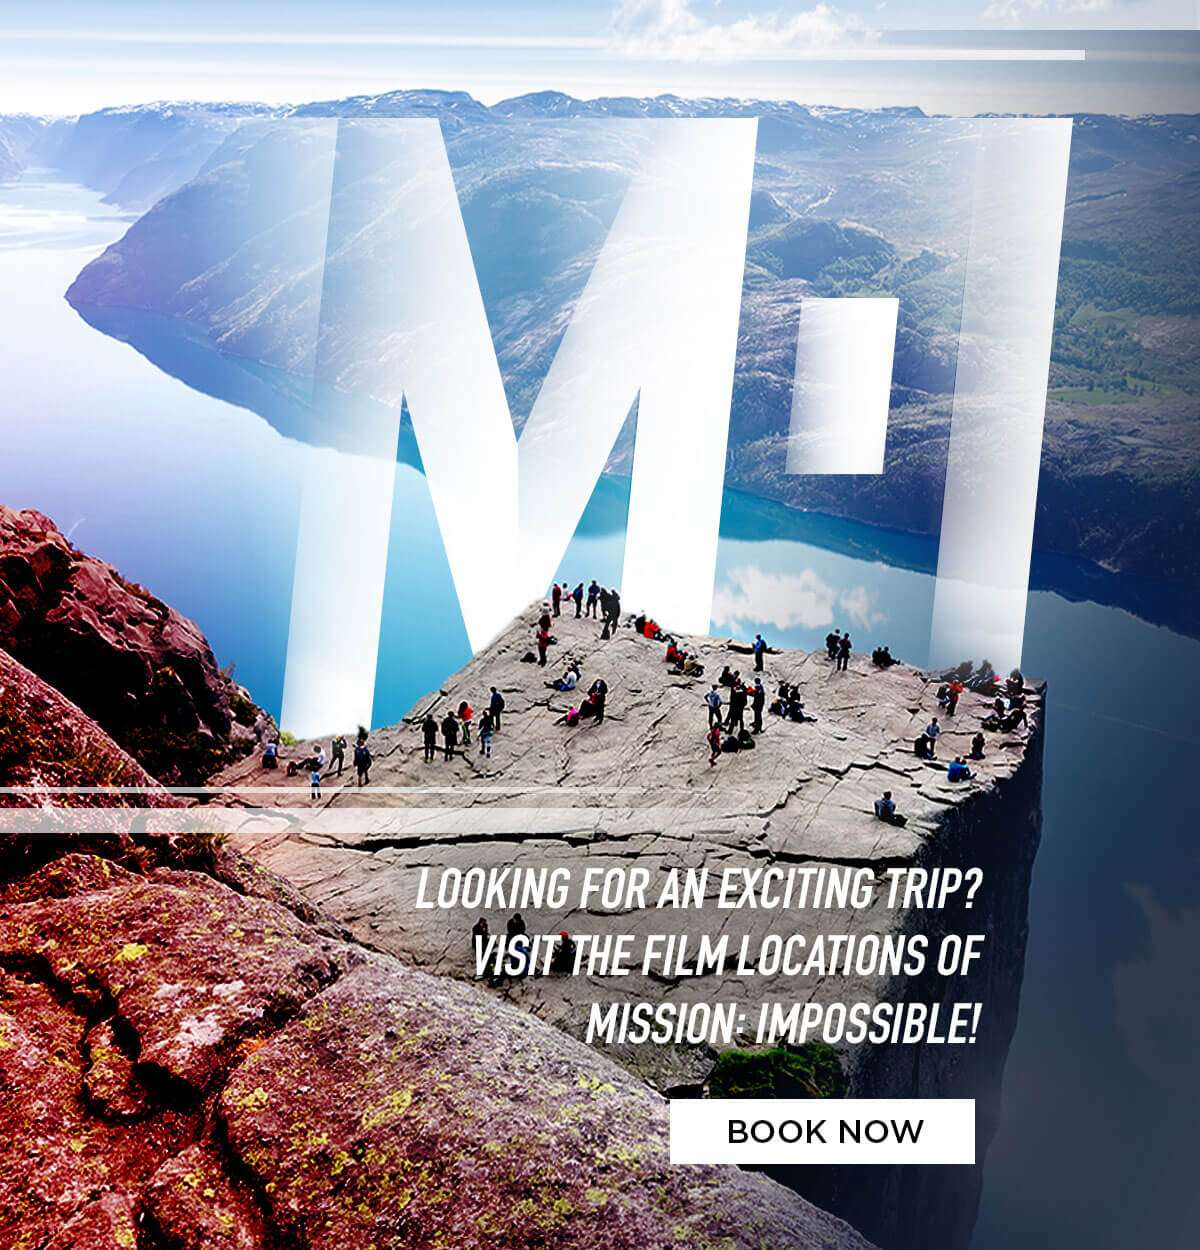 Looking for an exciting trip? Visit the film locations of Mission: Impossible!